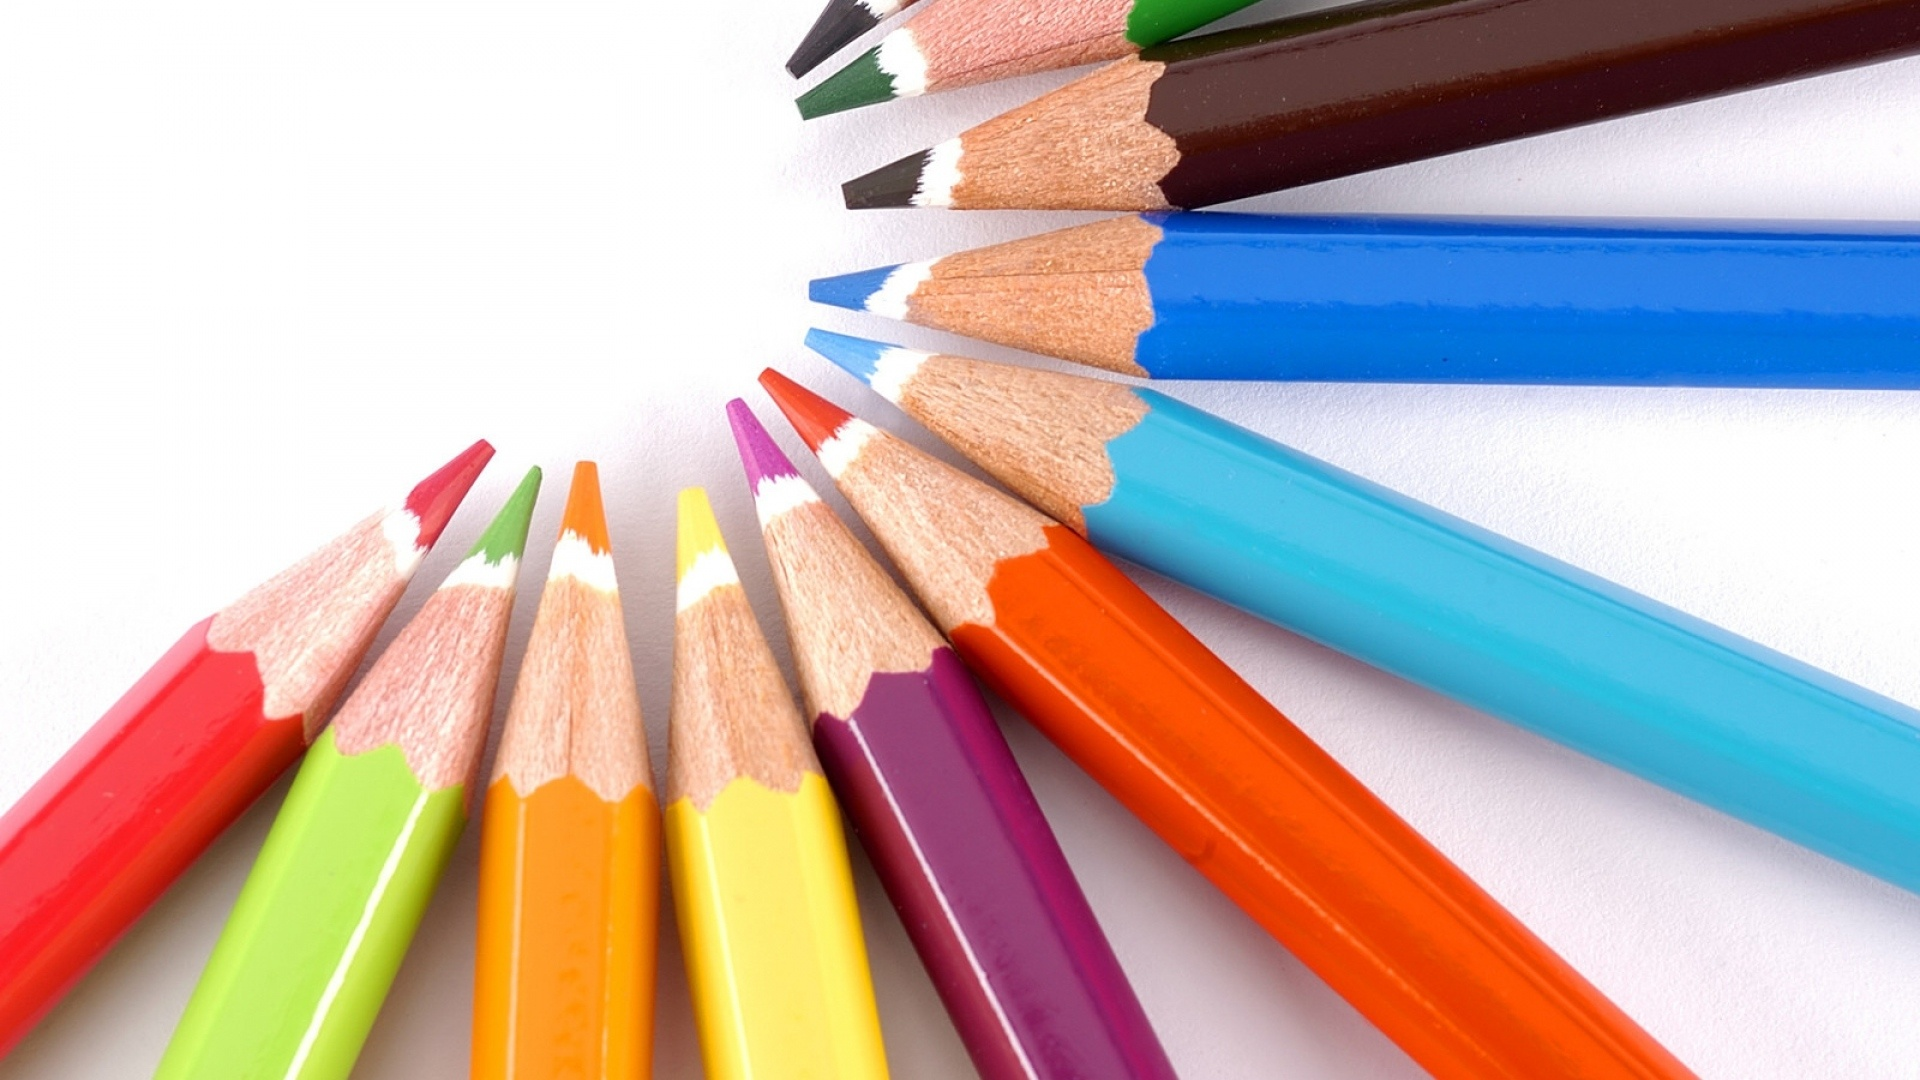 Pencil desktop wallpaper hd